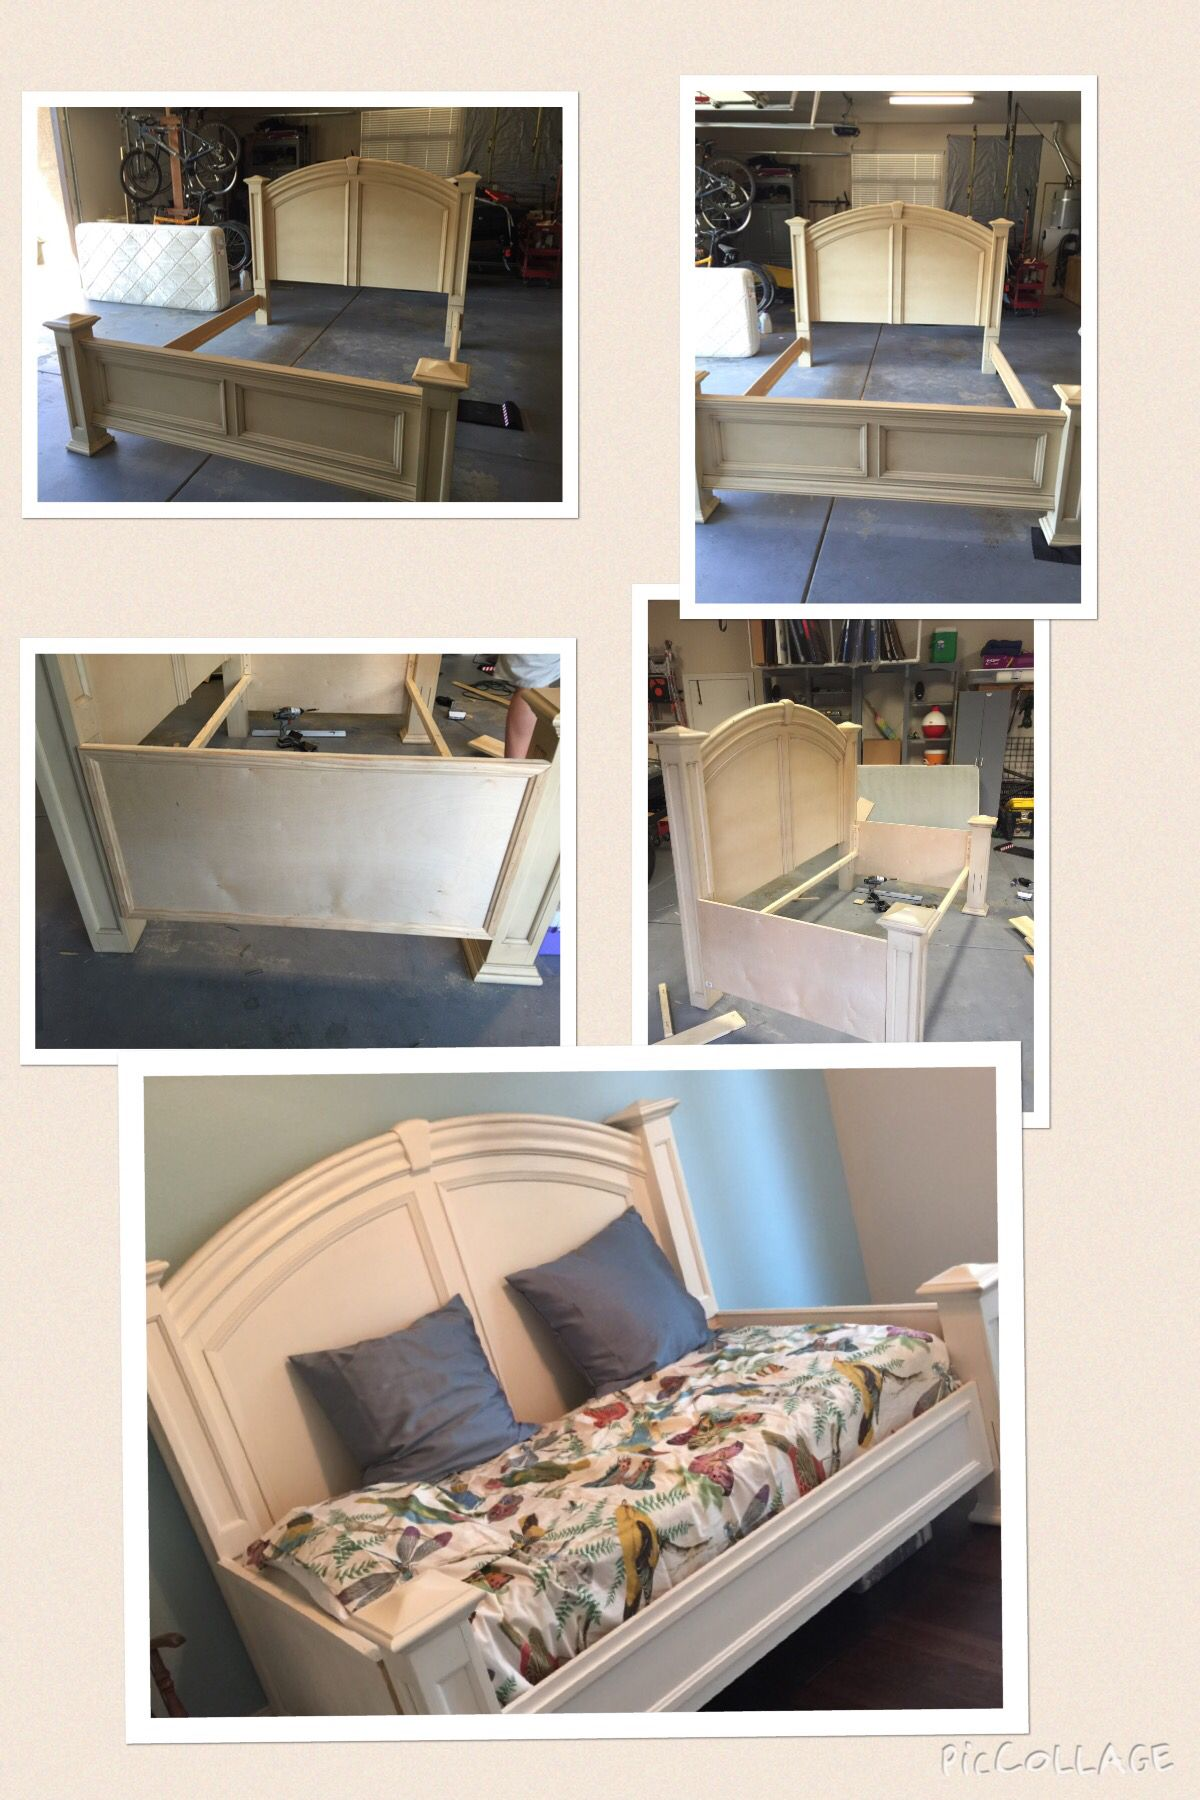 King headboard and footboard rehab to twin daybed. I found a daybed ...